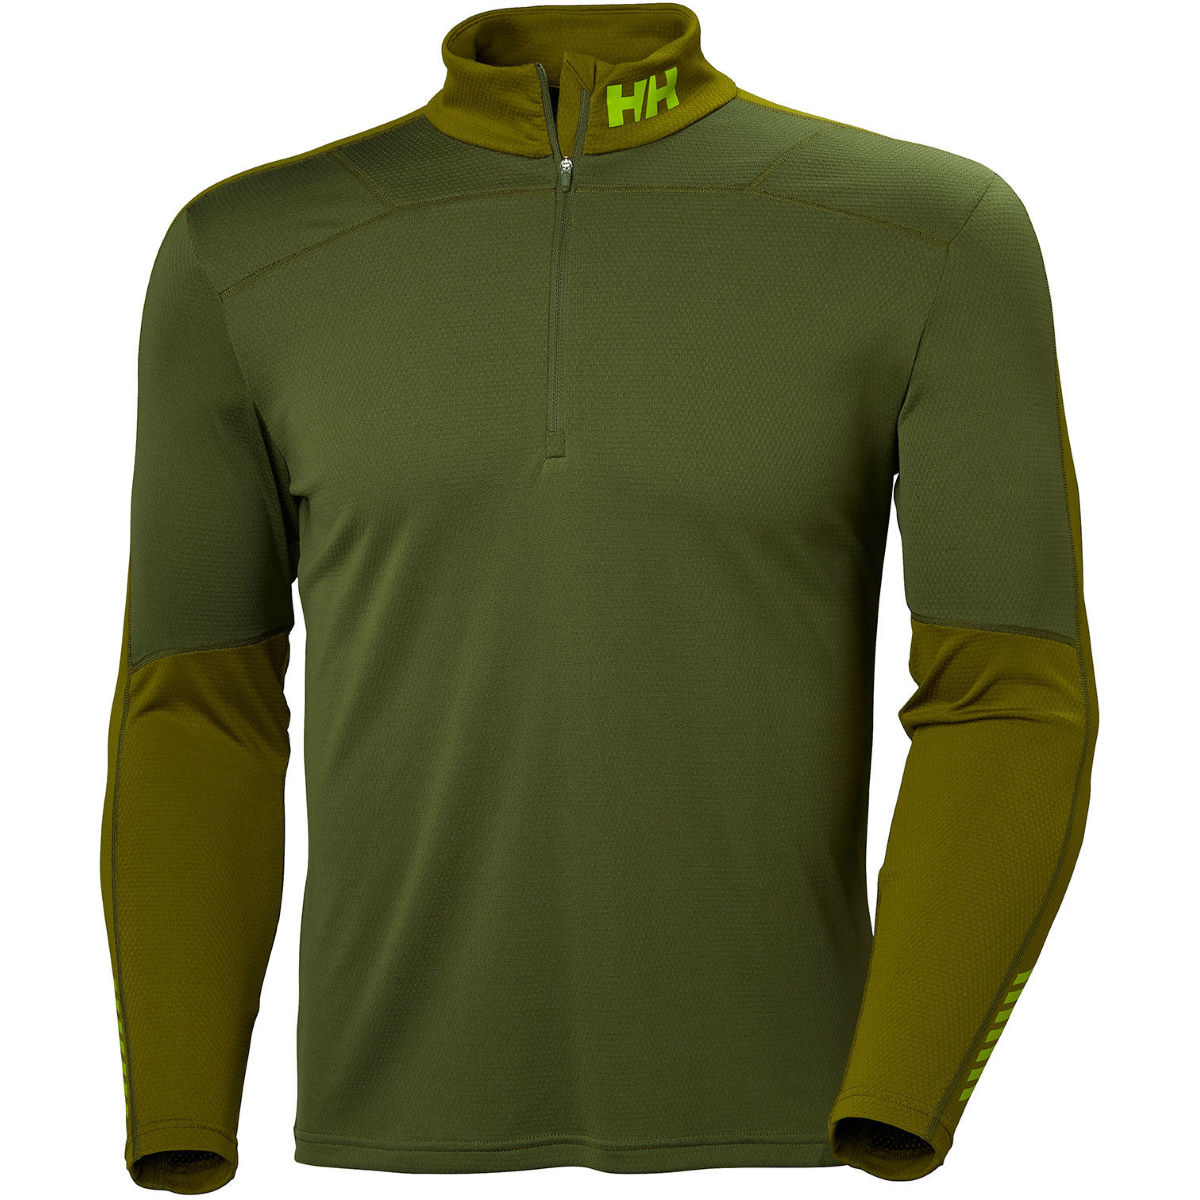 Helly Hansen Lifa Active 1/2 Zip Base Layer Black M - Camisetas interiores